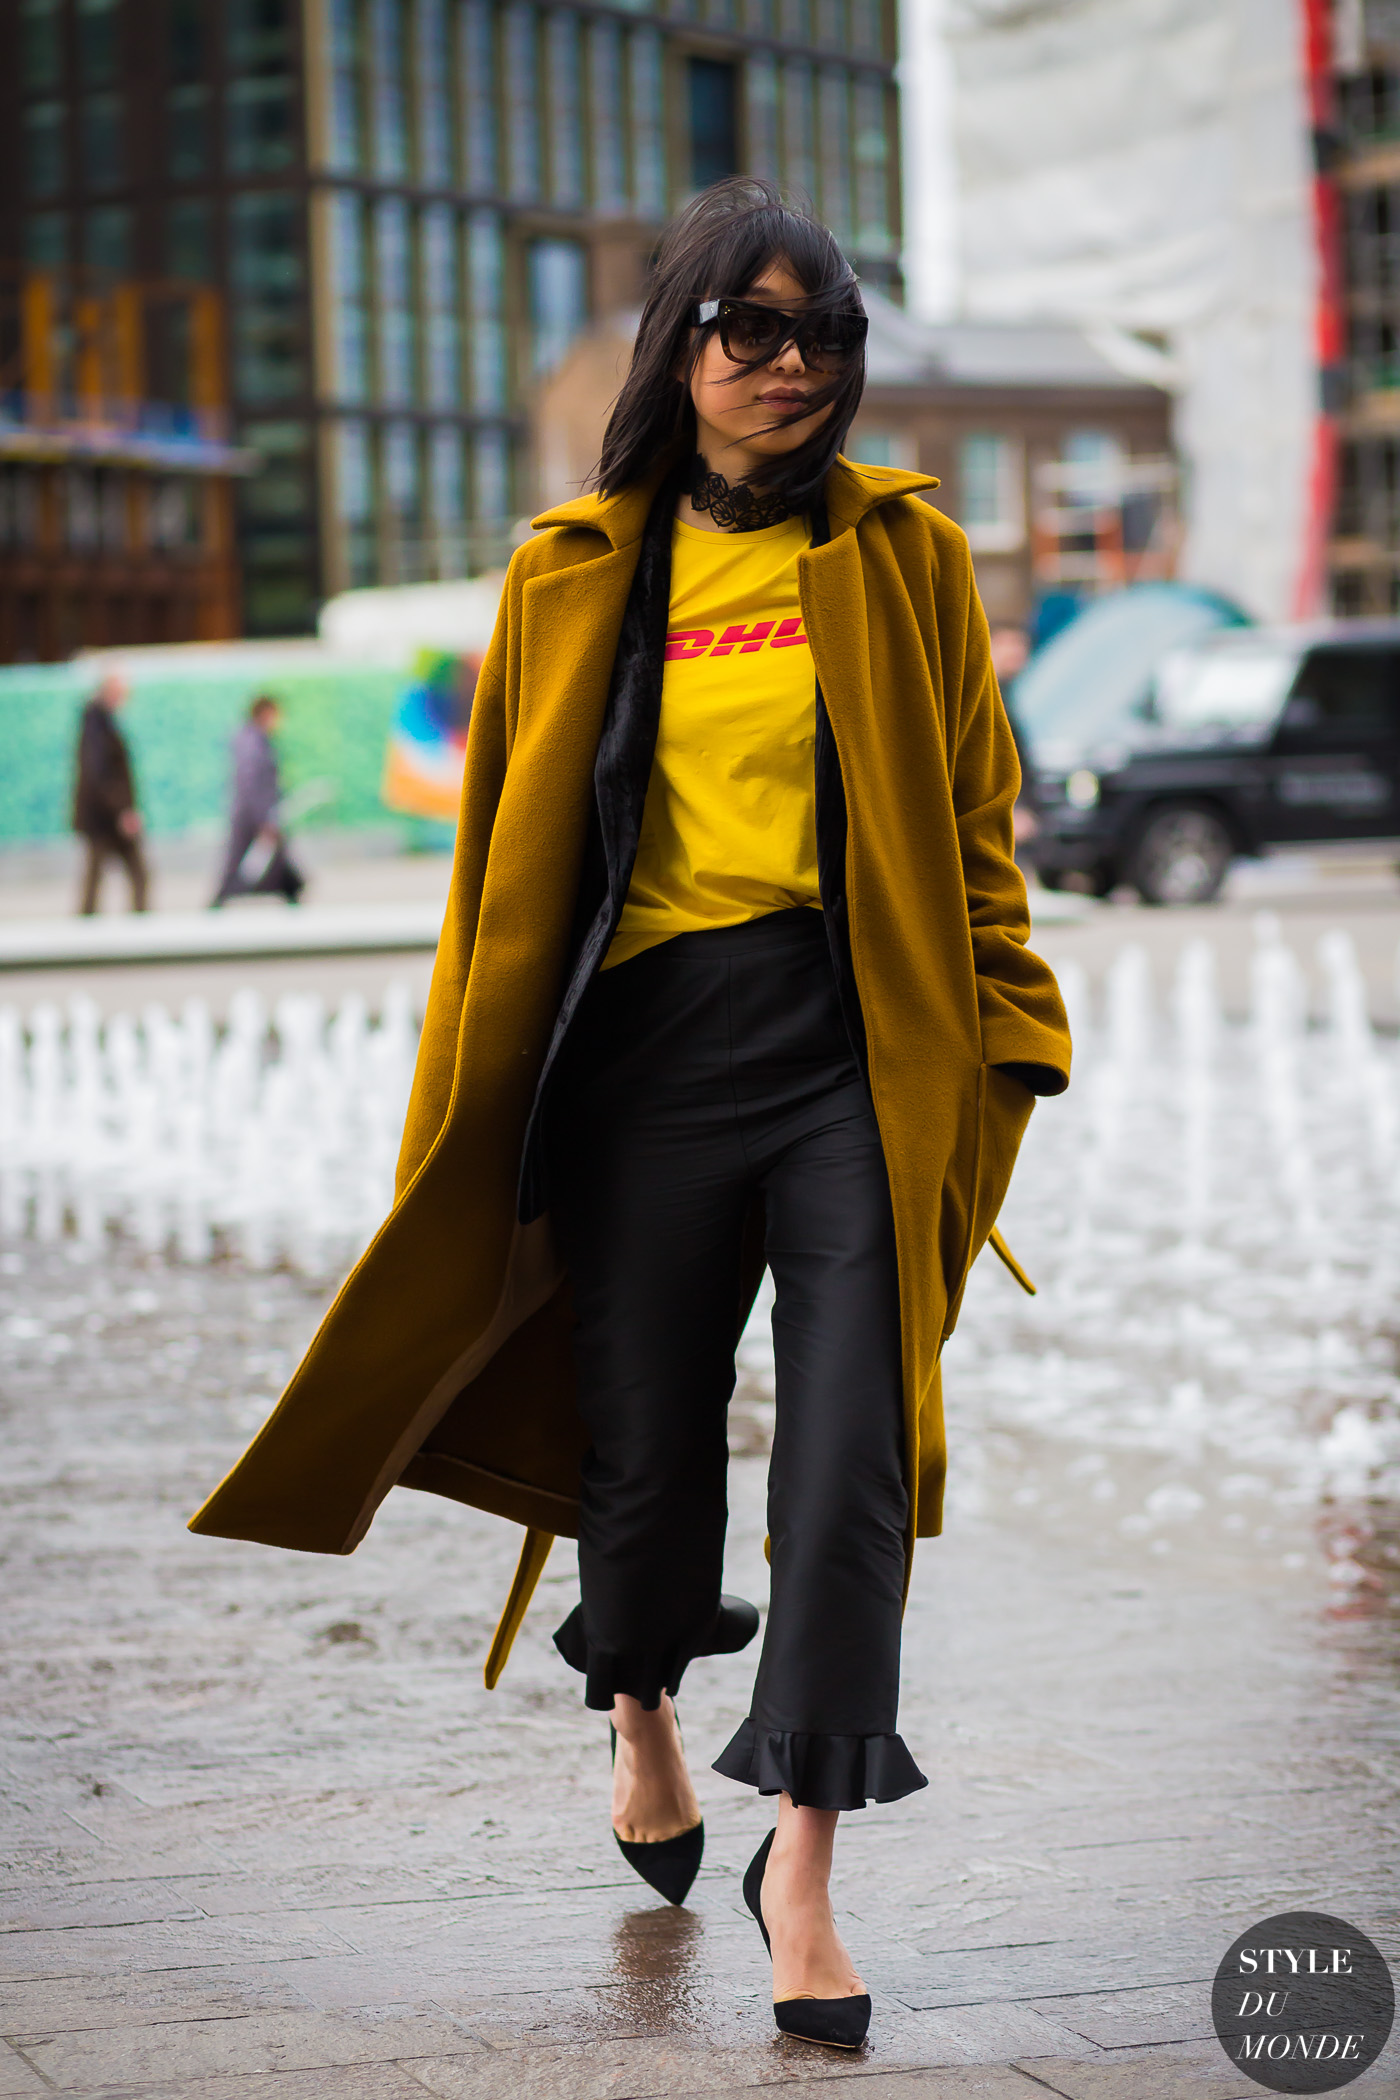 Margaret Zhang Street Style Street Fashion Streetsnaps by STYLEDUMONDE Street Style Fashion Photography